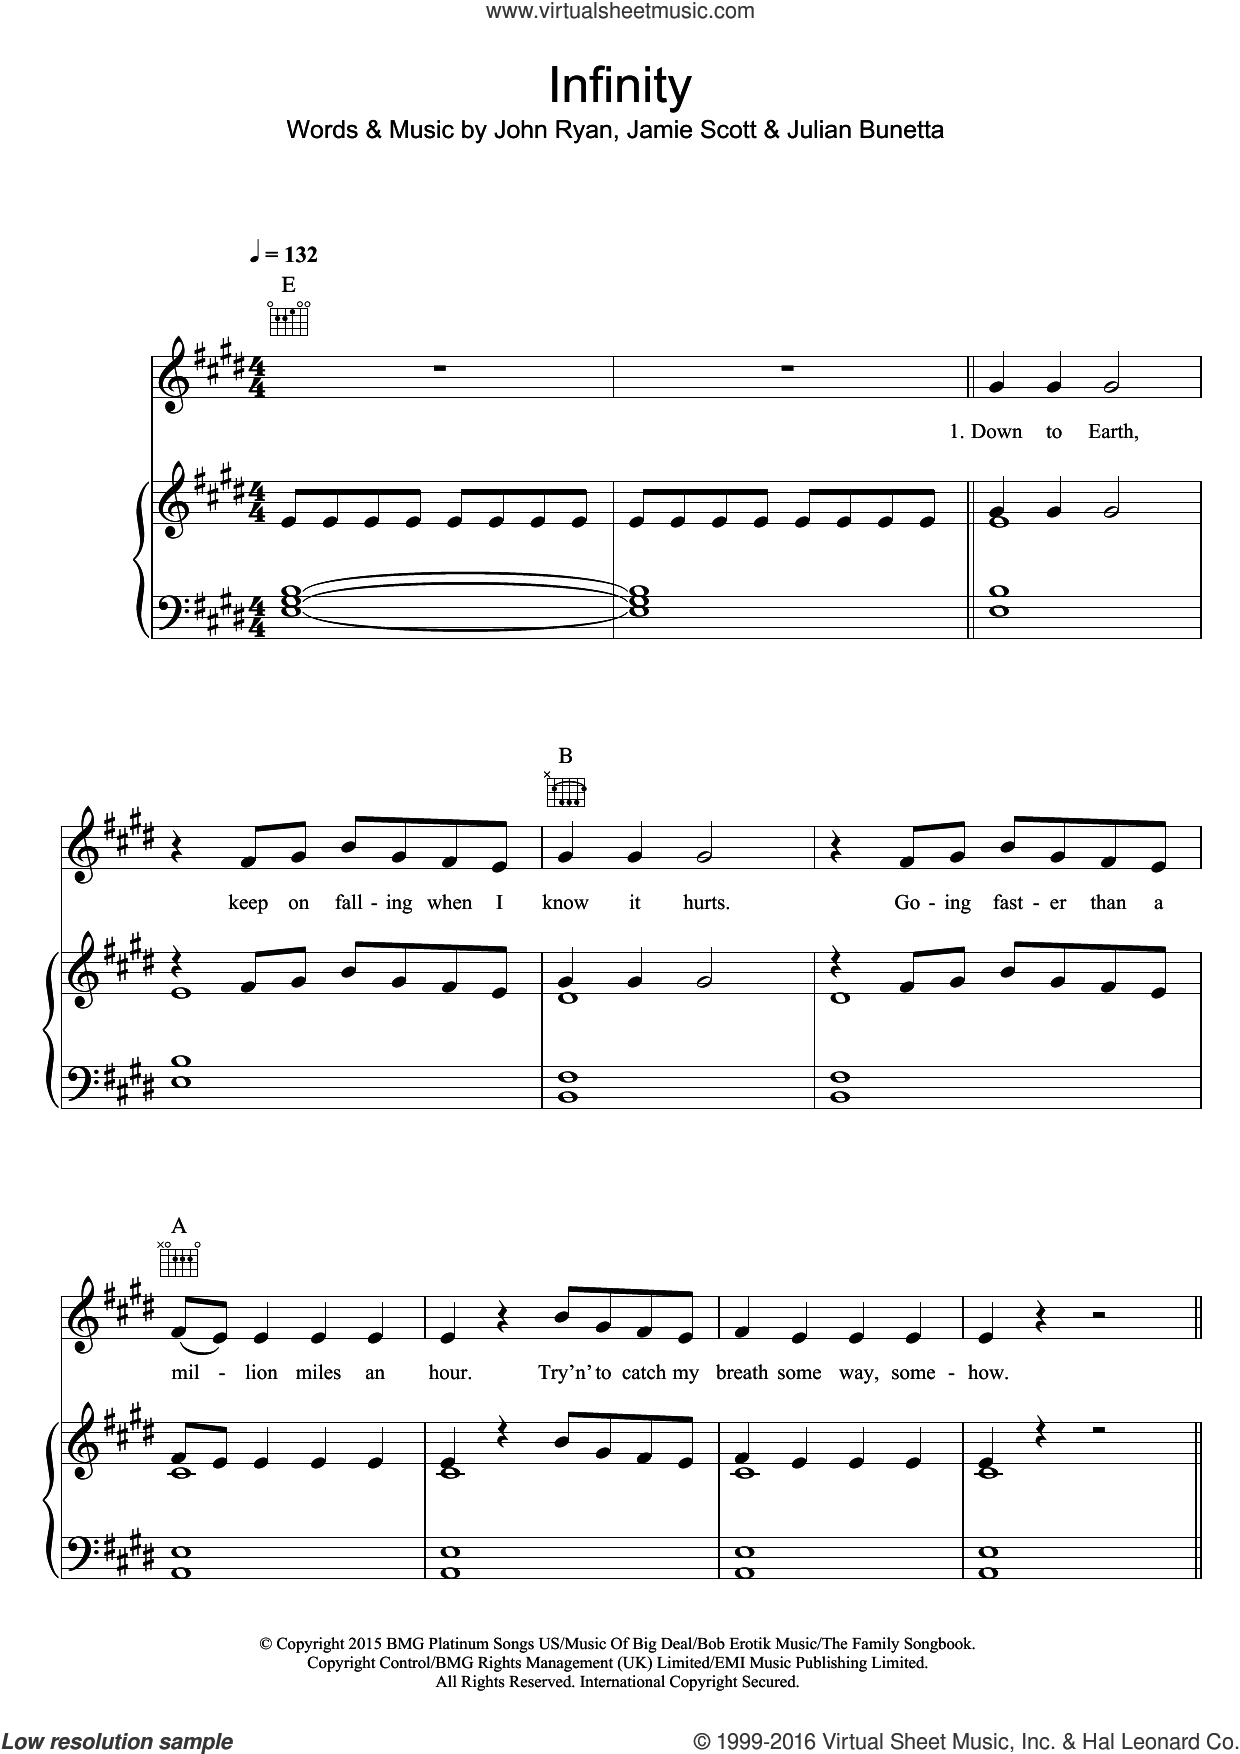 Infinity sheet music for voice, piano or guitar by One Direction, Jamie Scott, John Ryan and Julian Bunetta, intermediate skill level